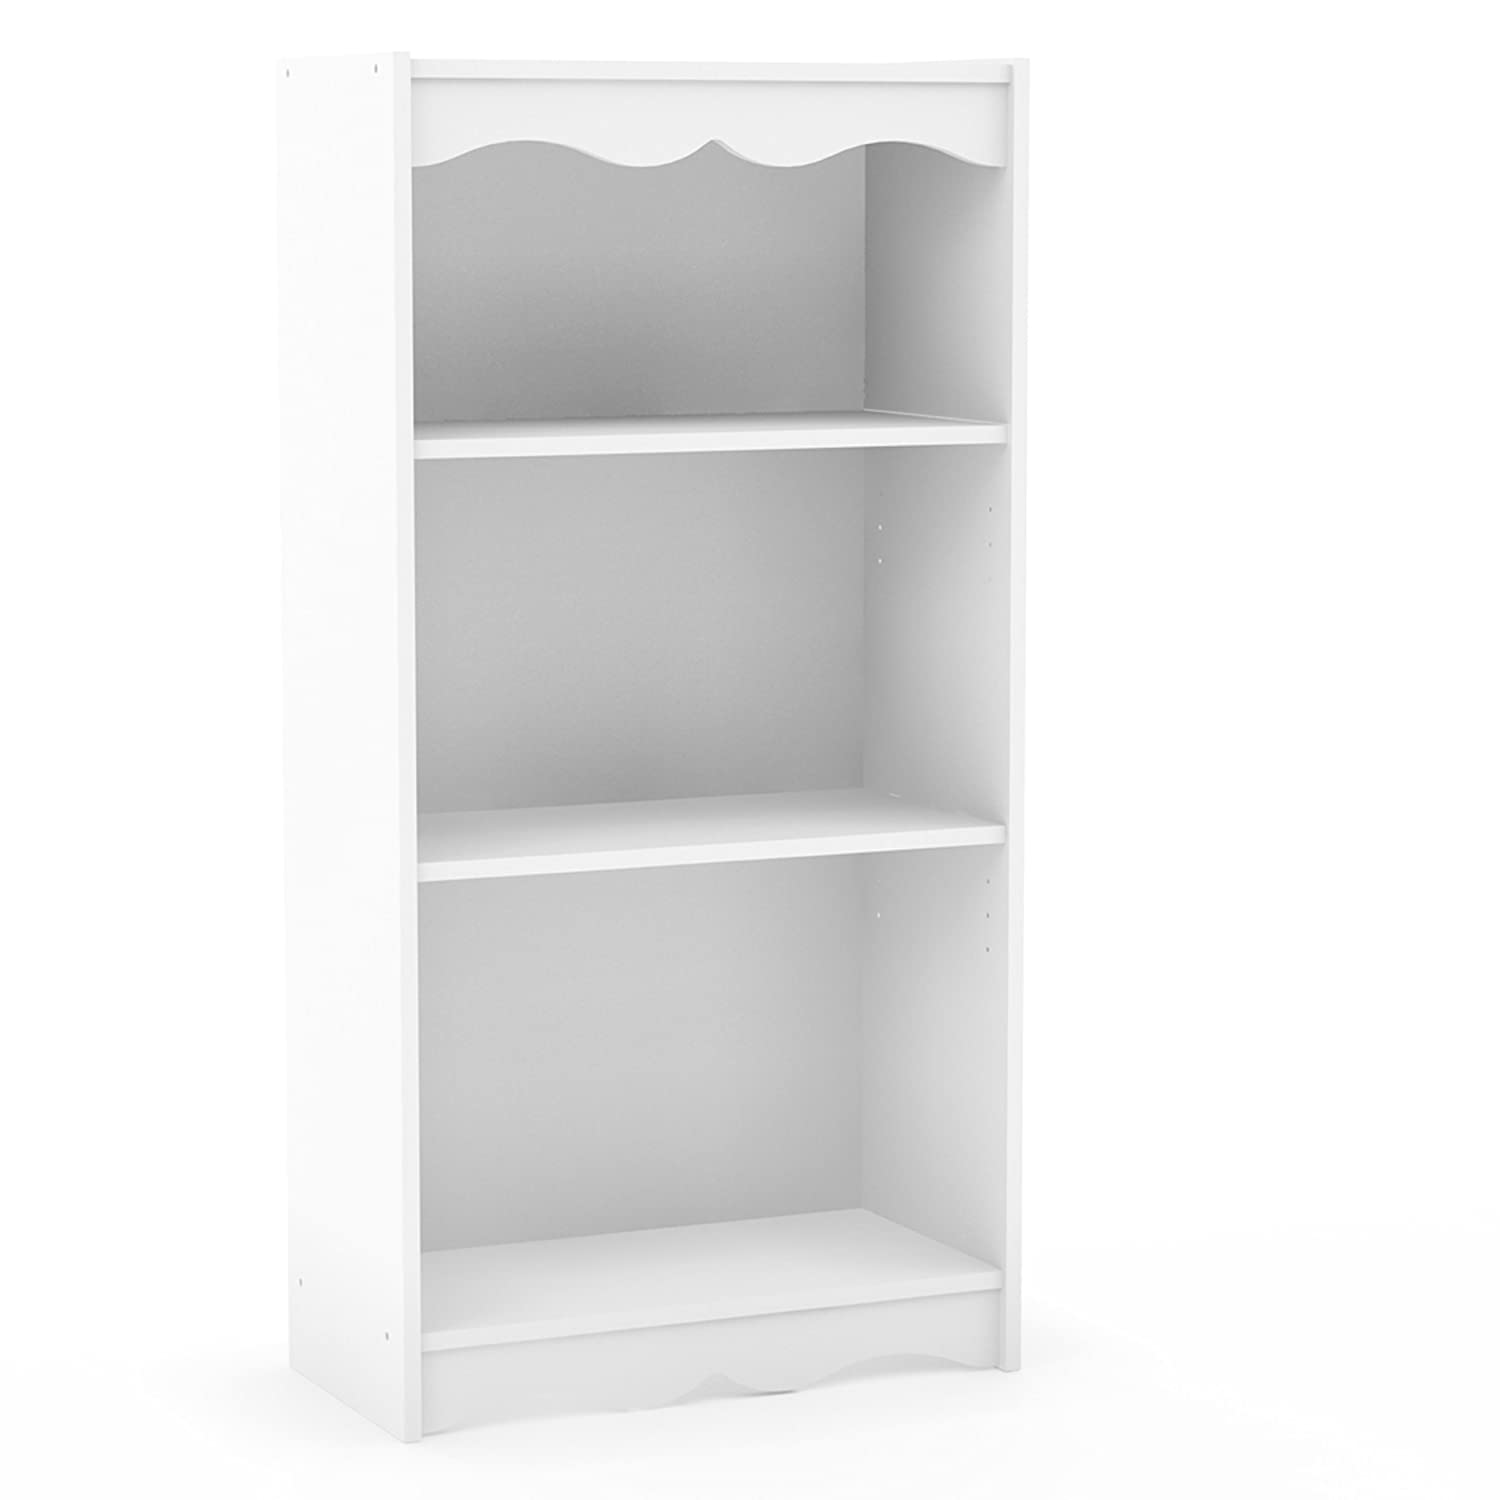 bookcase australia storage tier shelves business now office price study computer cheap buy shelf white level bookcases desk with table